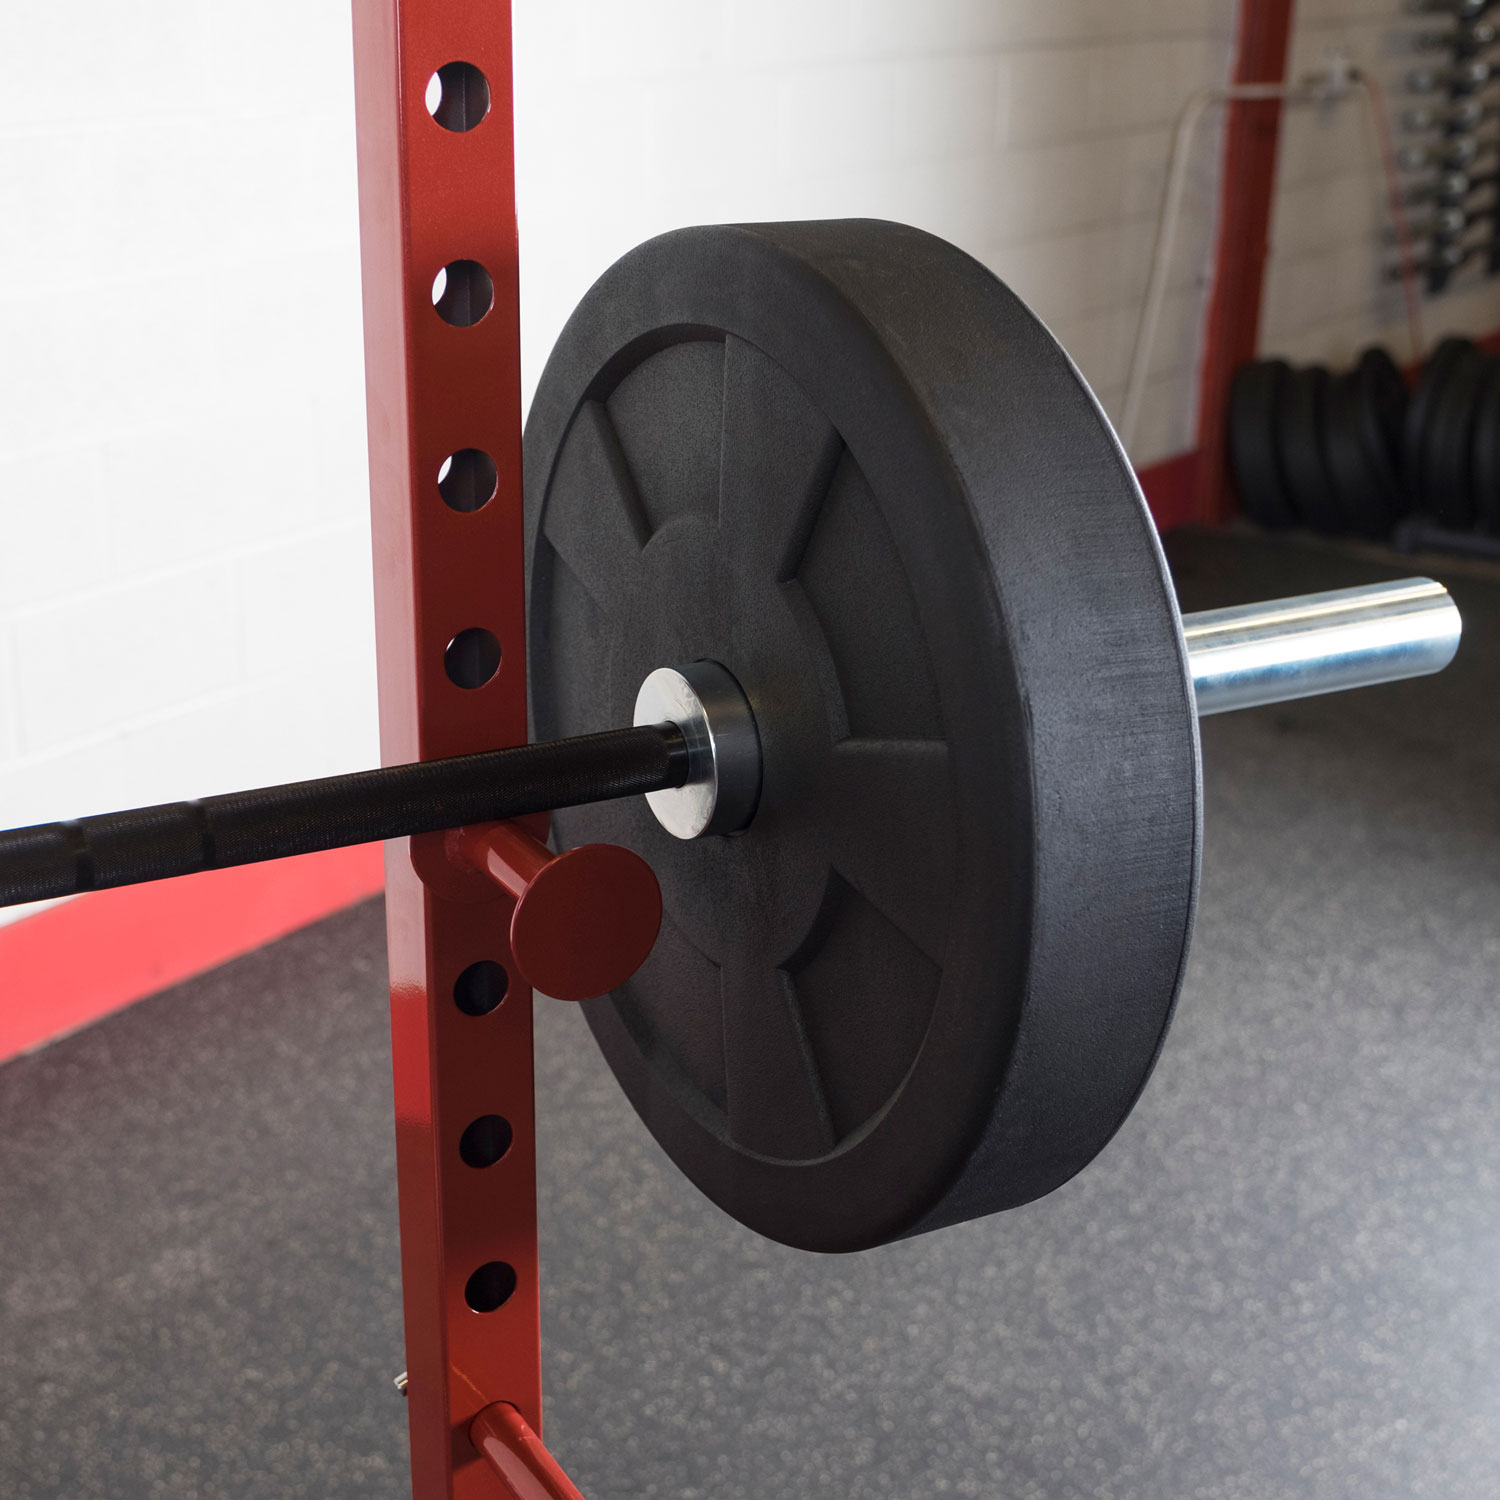 Power Rack With Weights: Body Solid Heavy-Duty Home Gym Workout Station Weight